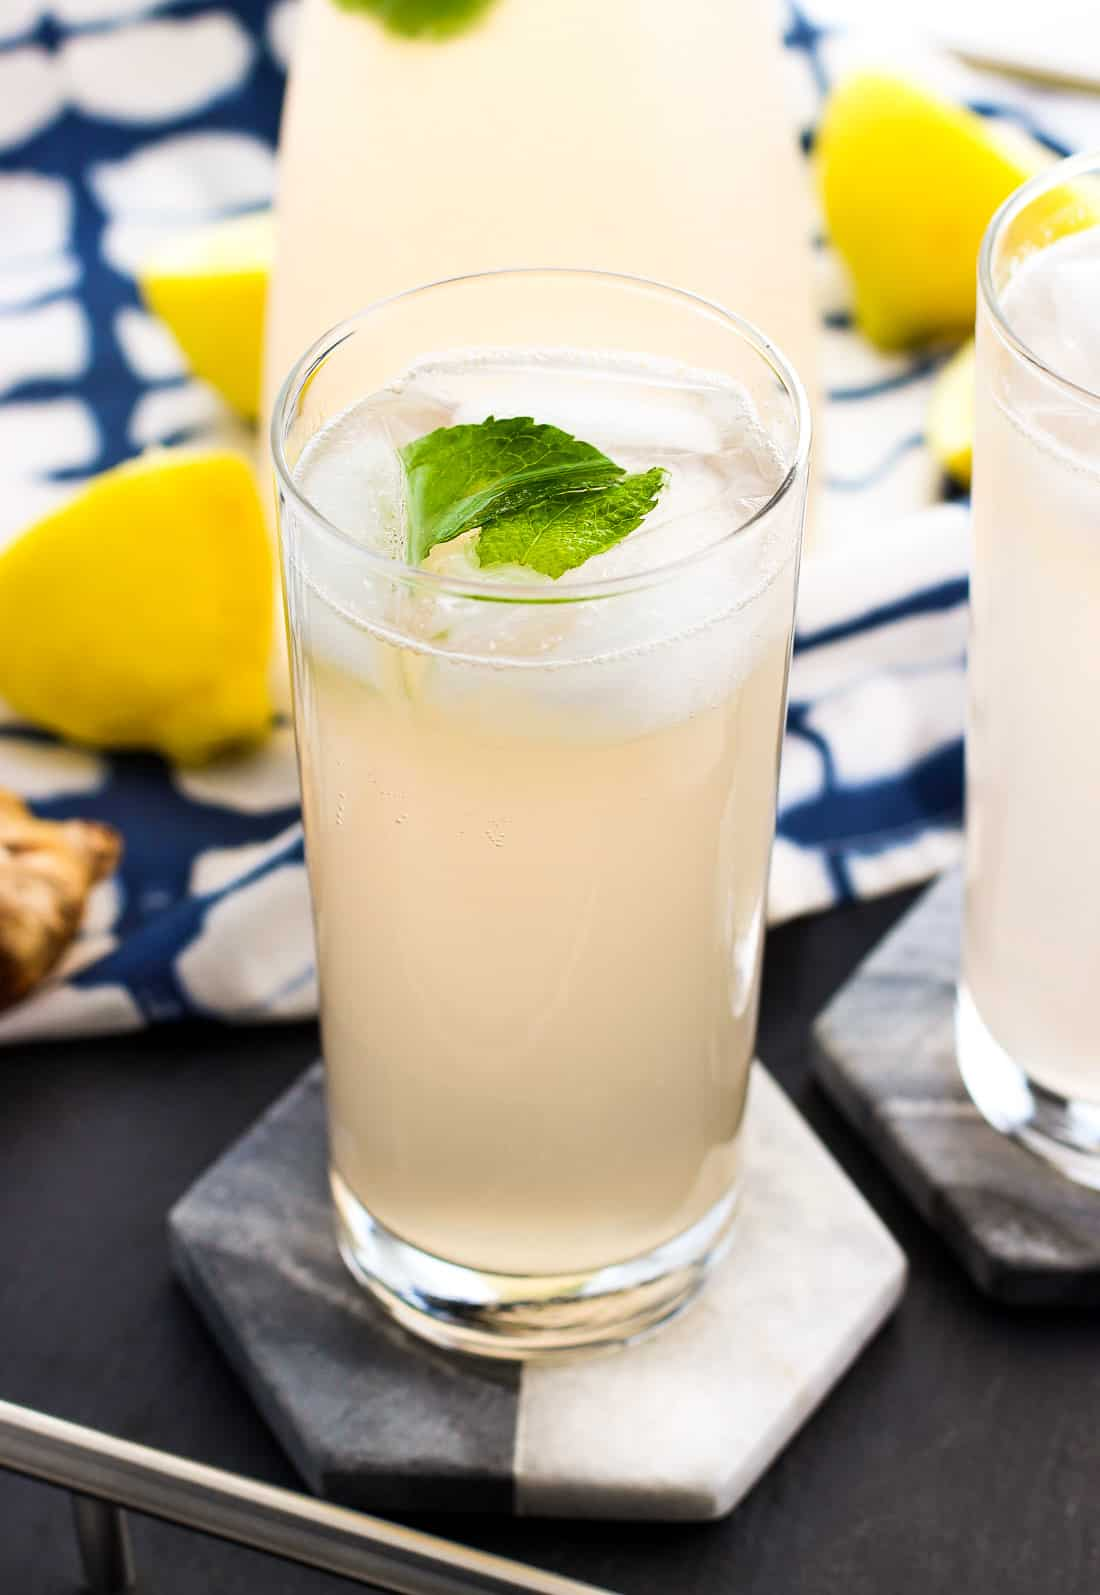 Fresh ginger and club soda make this sparkling ginger lemonade a warm weather treat! An easy ginger simple syrup both sweetens this homemade lemonade recipe and provides just enough of a ginger flavor without a bite.